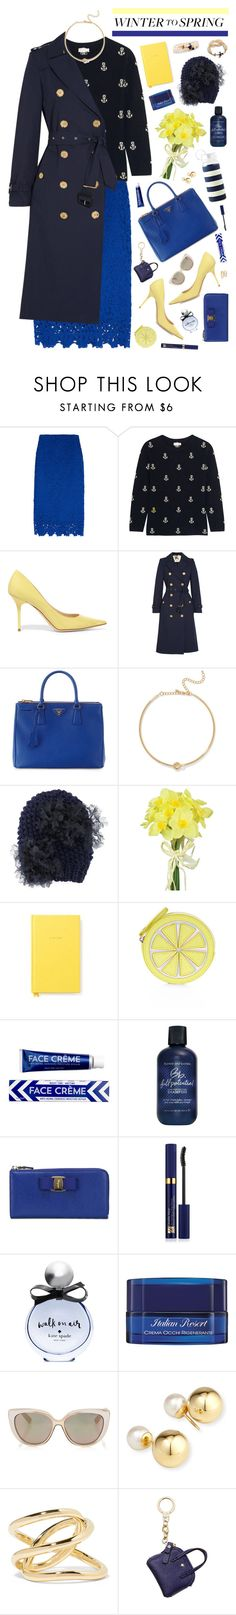 """""""Untitled #258"""" by piccolamarisa ❤ liked on Polyvore featuring J.Crew, Chinti and Parker, Jimmy Choo, Burberry, Prada, Kenneth Jay Lane, Gigi Burris Millinery, Pavilion Broadway, Accessorize and Jao"""